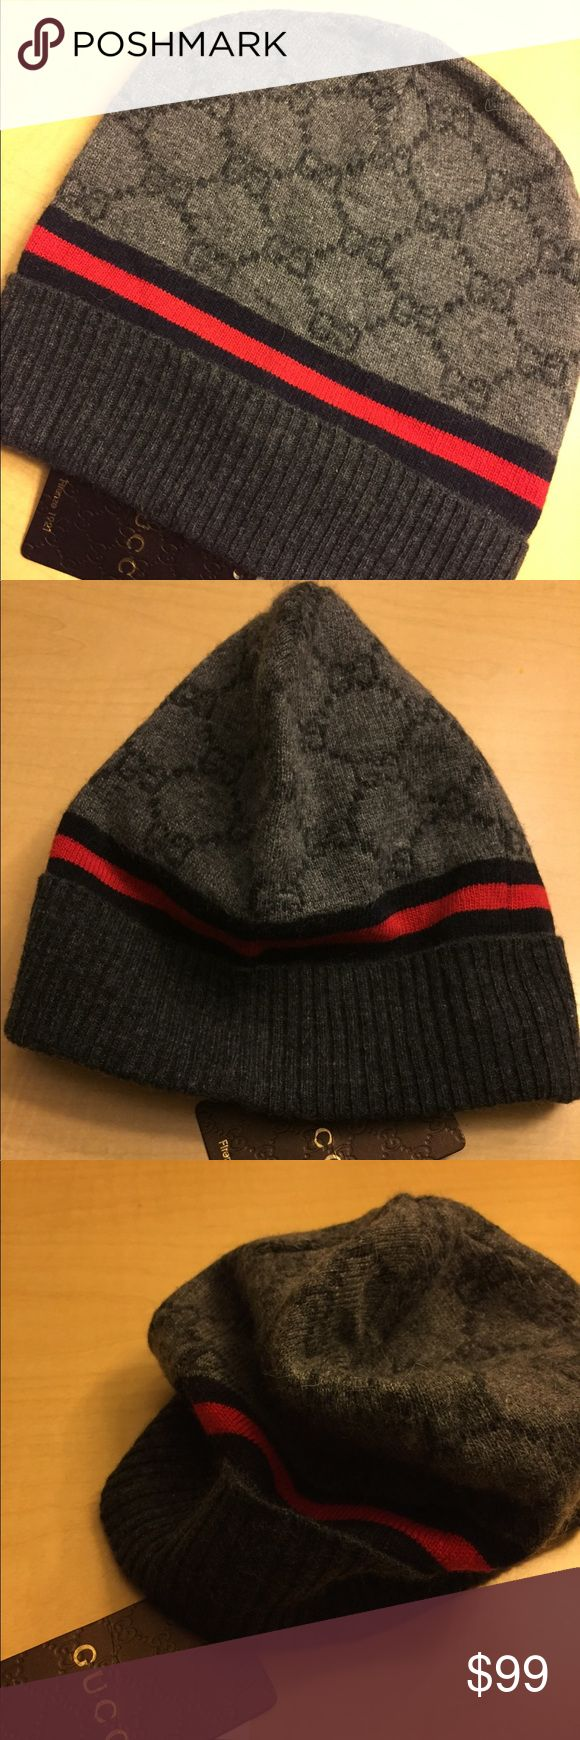 Authentic Gucci Wool Beanie Authentic Gucci Beanie Hat For those who love wearing the latest fashion trends;you can count on Italy's most prestigious designer GUCCI .  When cold weather is in the forecast, take cover in this Unisex GUCCI Beanie Hat,  complete with a warm protective Hat that feature a durable stretch fit and the active style you want. . Made in Italy, Brand New with all Tags  Material: 70% Wool - 30% Cashmere Gucci Accessories Hats